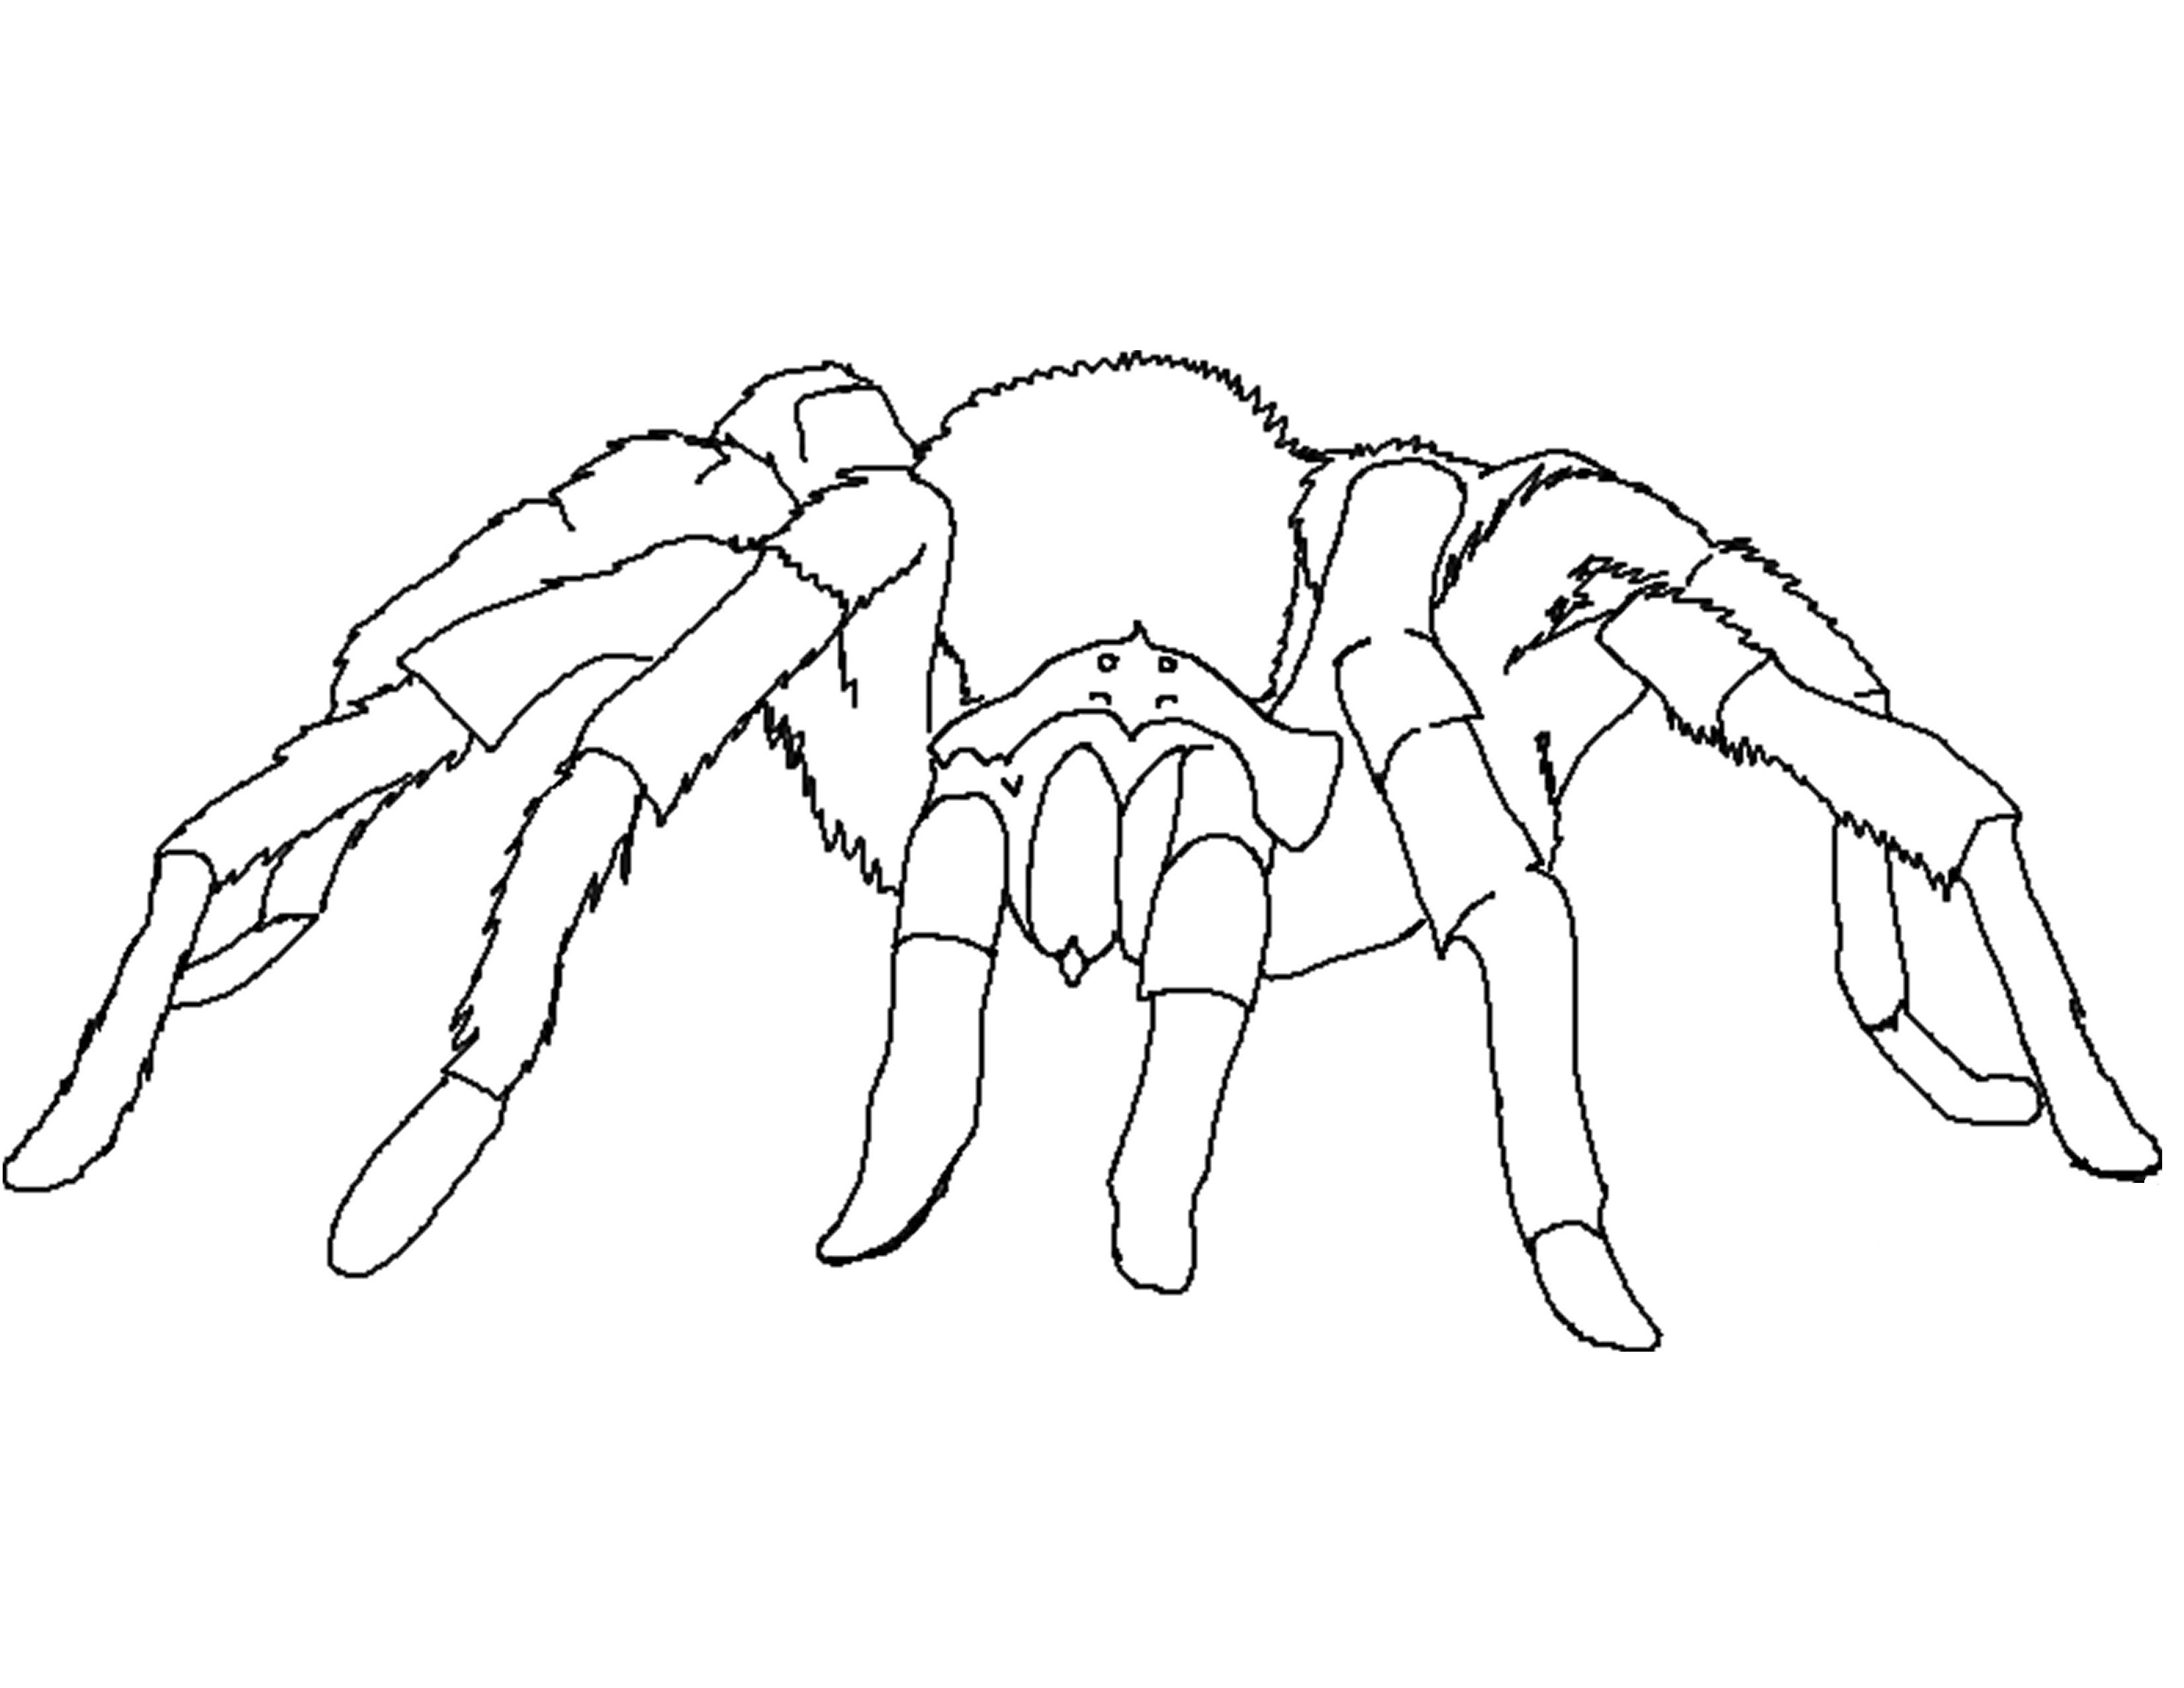 black widow spider coloring pages free printable spider coloring pages for kids black widow coloring spider pages